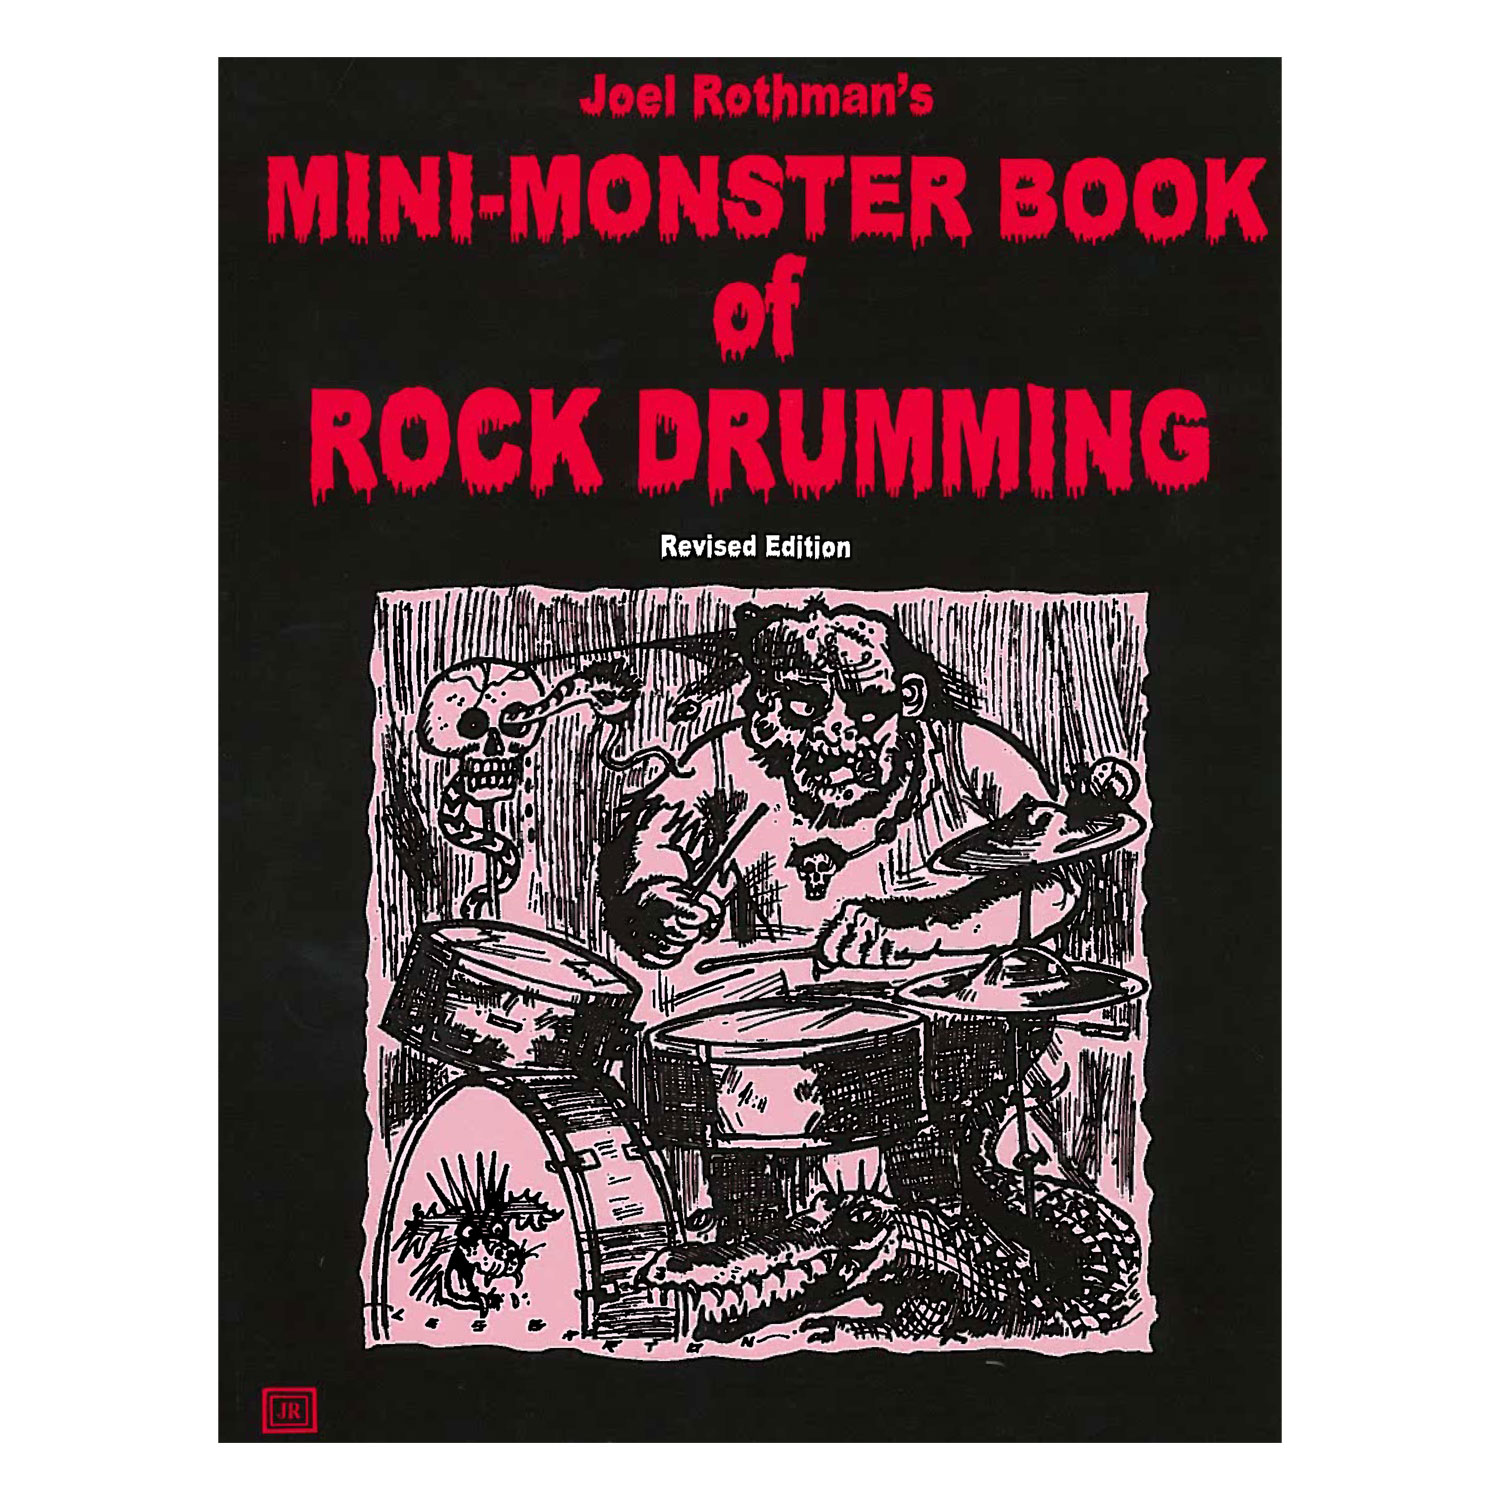 Mini-Monster Book of Rock Drumming by Joel Rothman